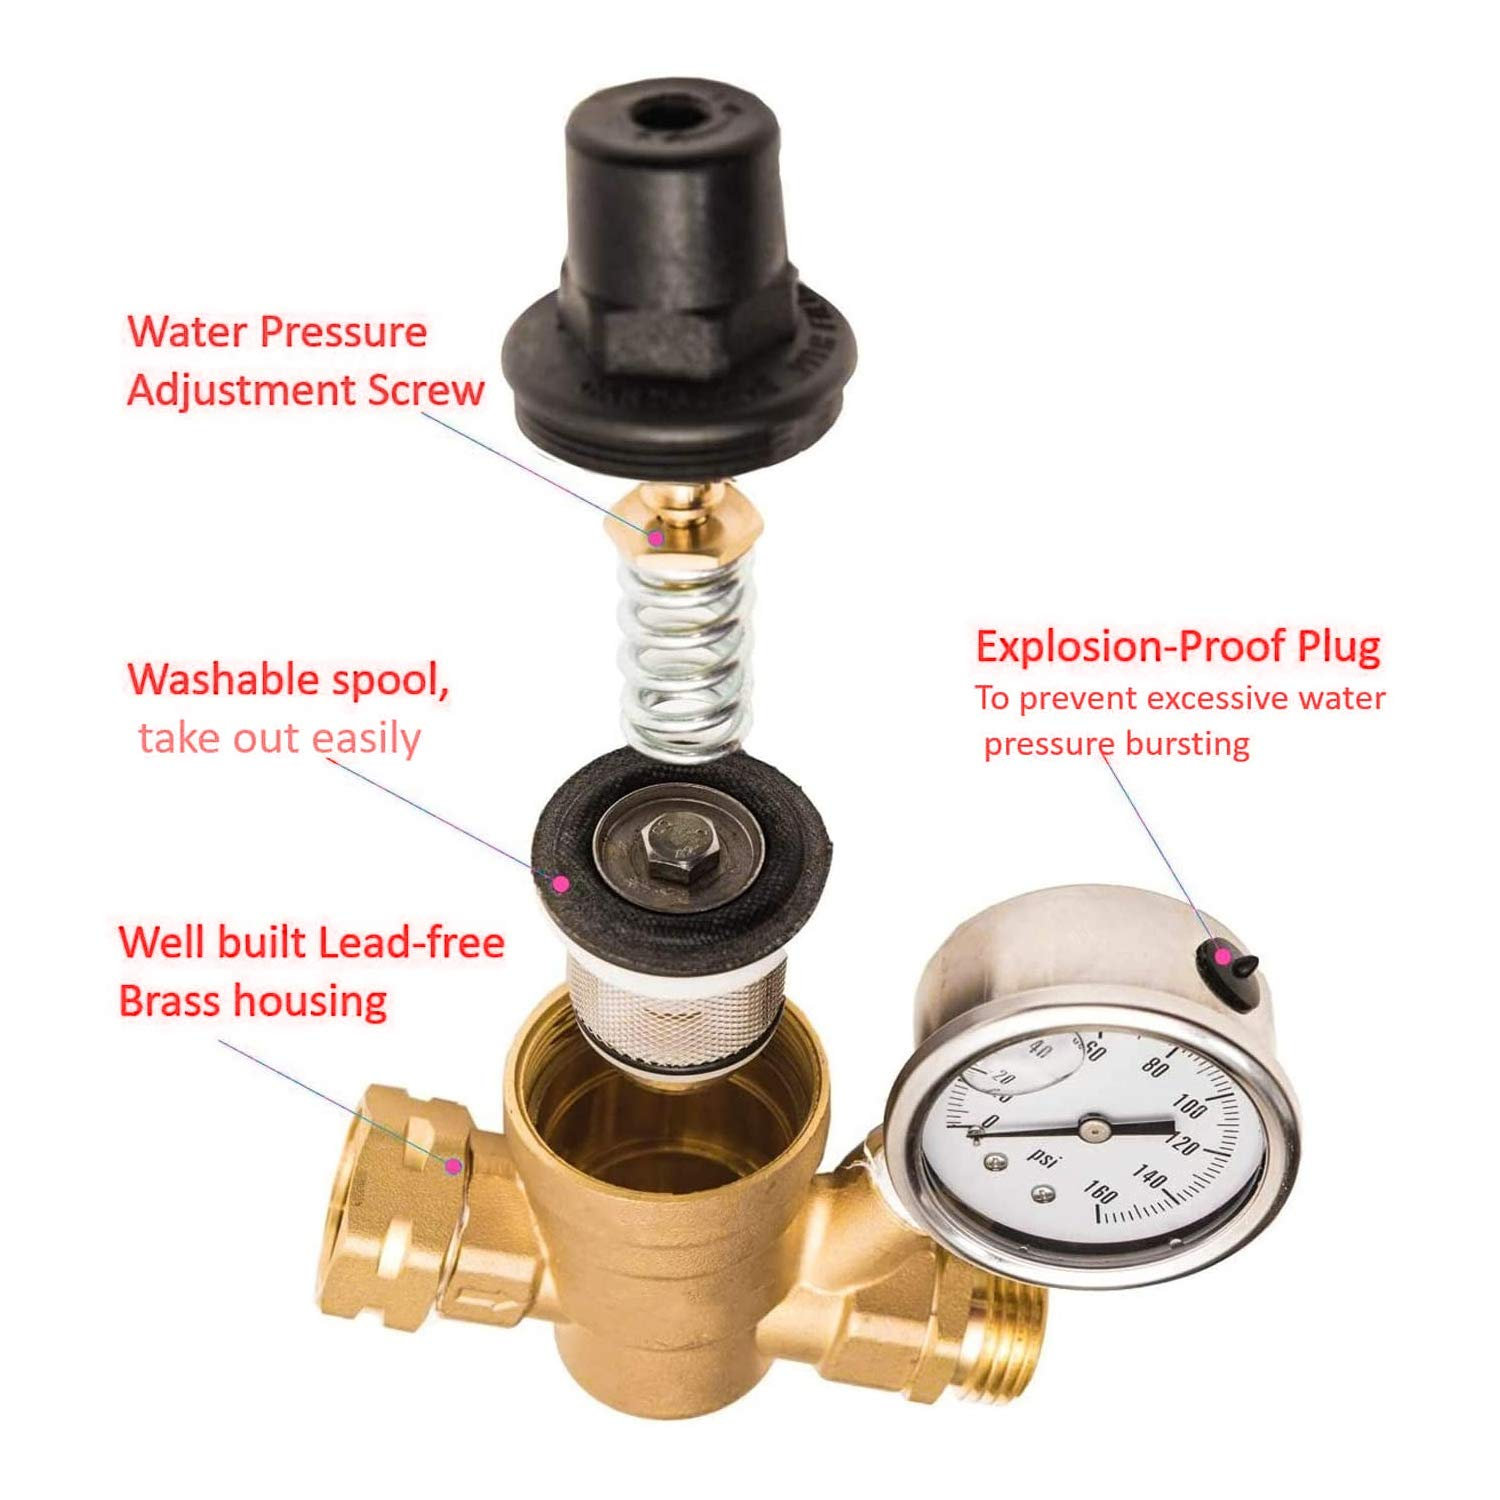 Adjustable Brass RV Water Pressure Reducer with Gauge and Stainless Screened Filter Xiny Tool Water Pressure Regulator for RV Camper